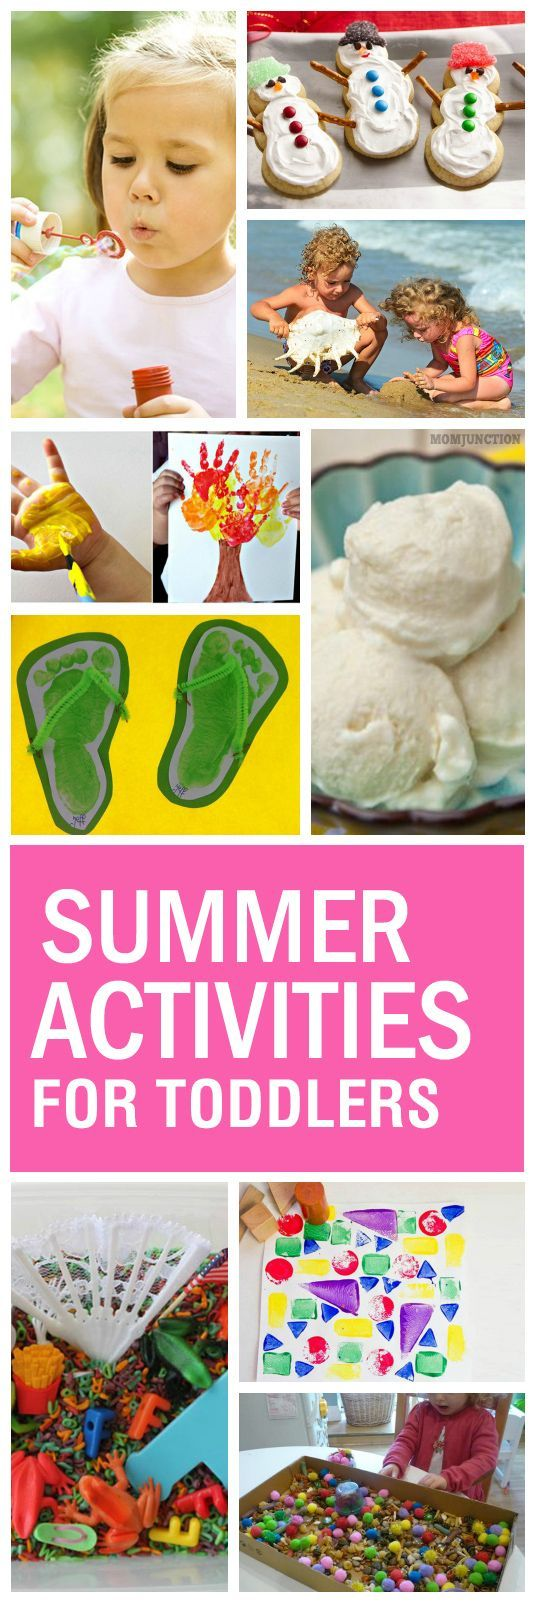 Summer Activities For Toddlers: Your sweet baby is now a terrific toddler, who does not like to sit still for more than ten seconds! Research indicates that spending time with toddlers helps with better cognitive development for them. Let's look at 10 interesting summer activities for toddlers